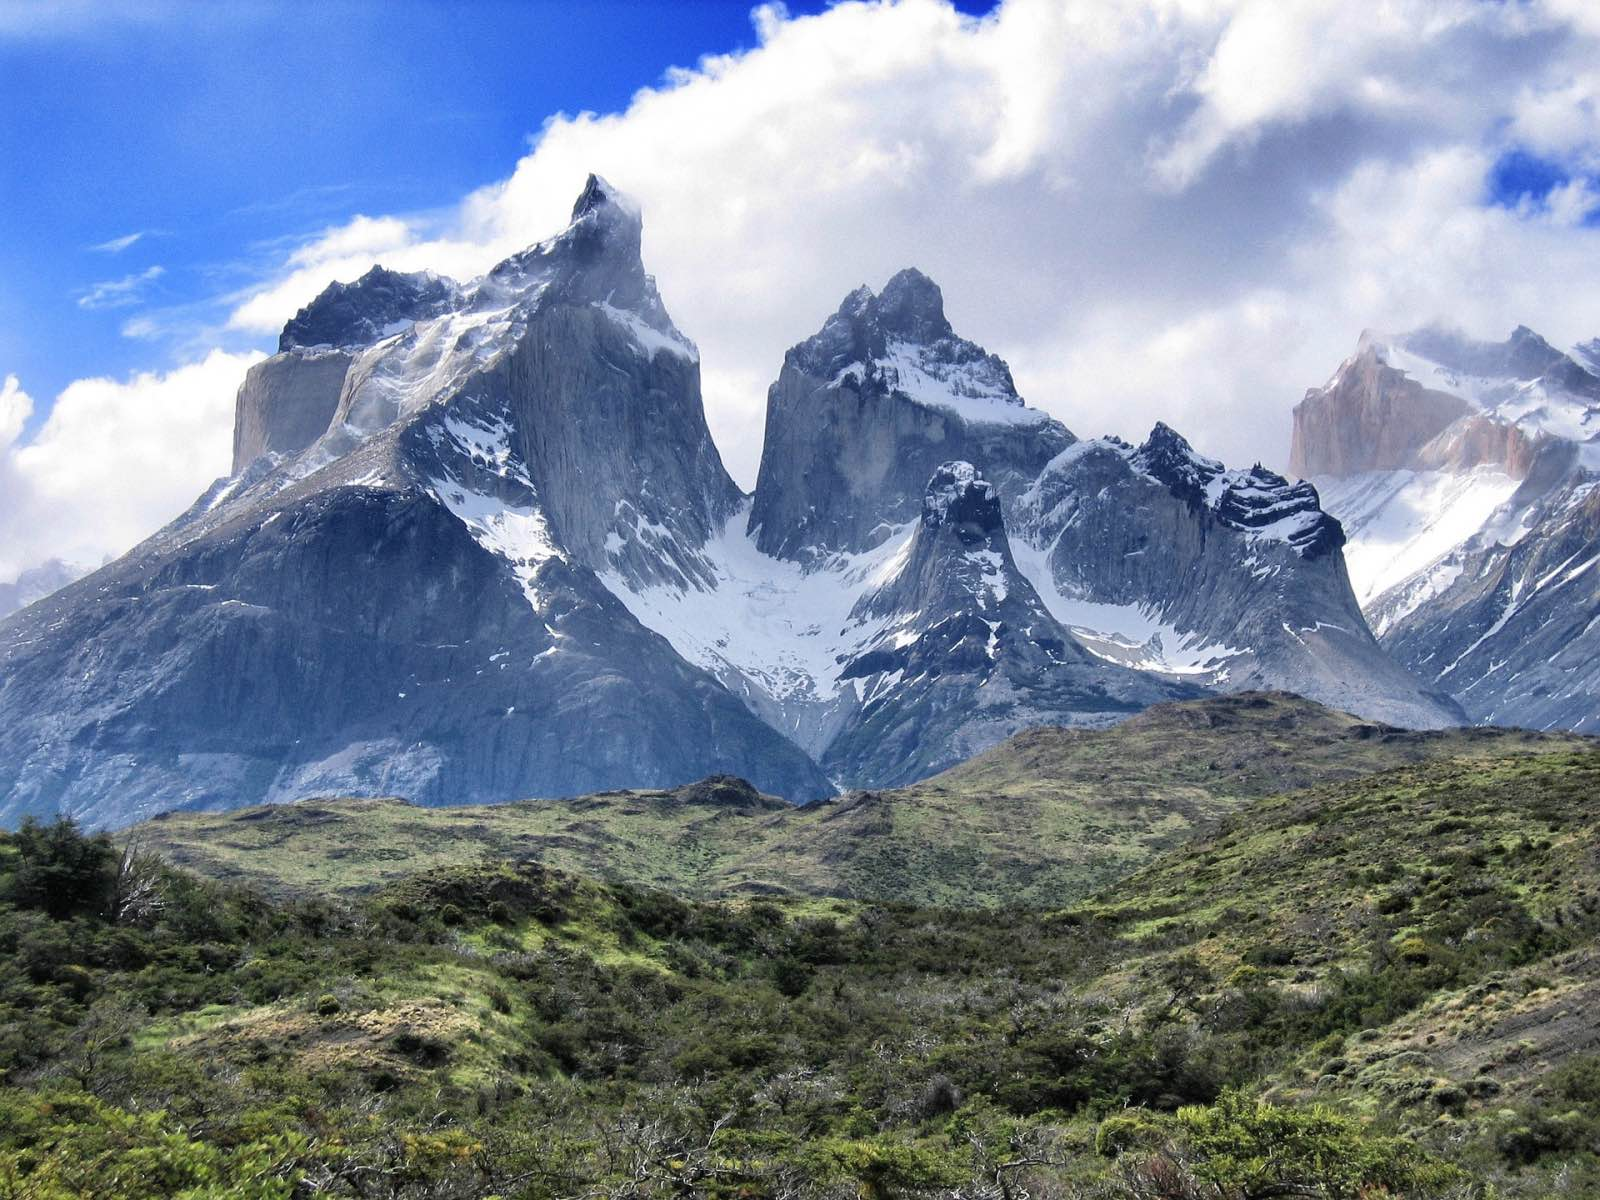 Torres del Paine mountain views - one of Patagonia's most popular hiking destinations